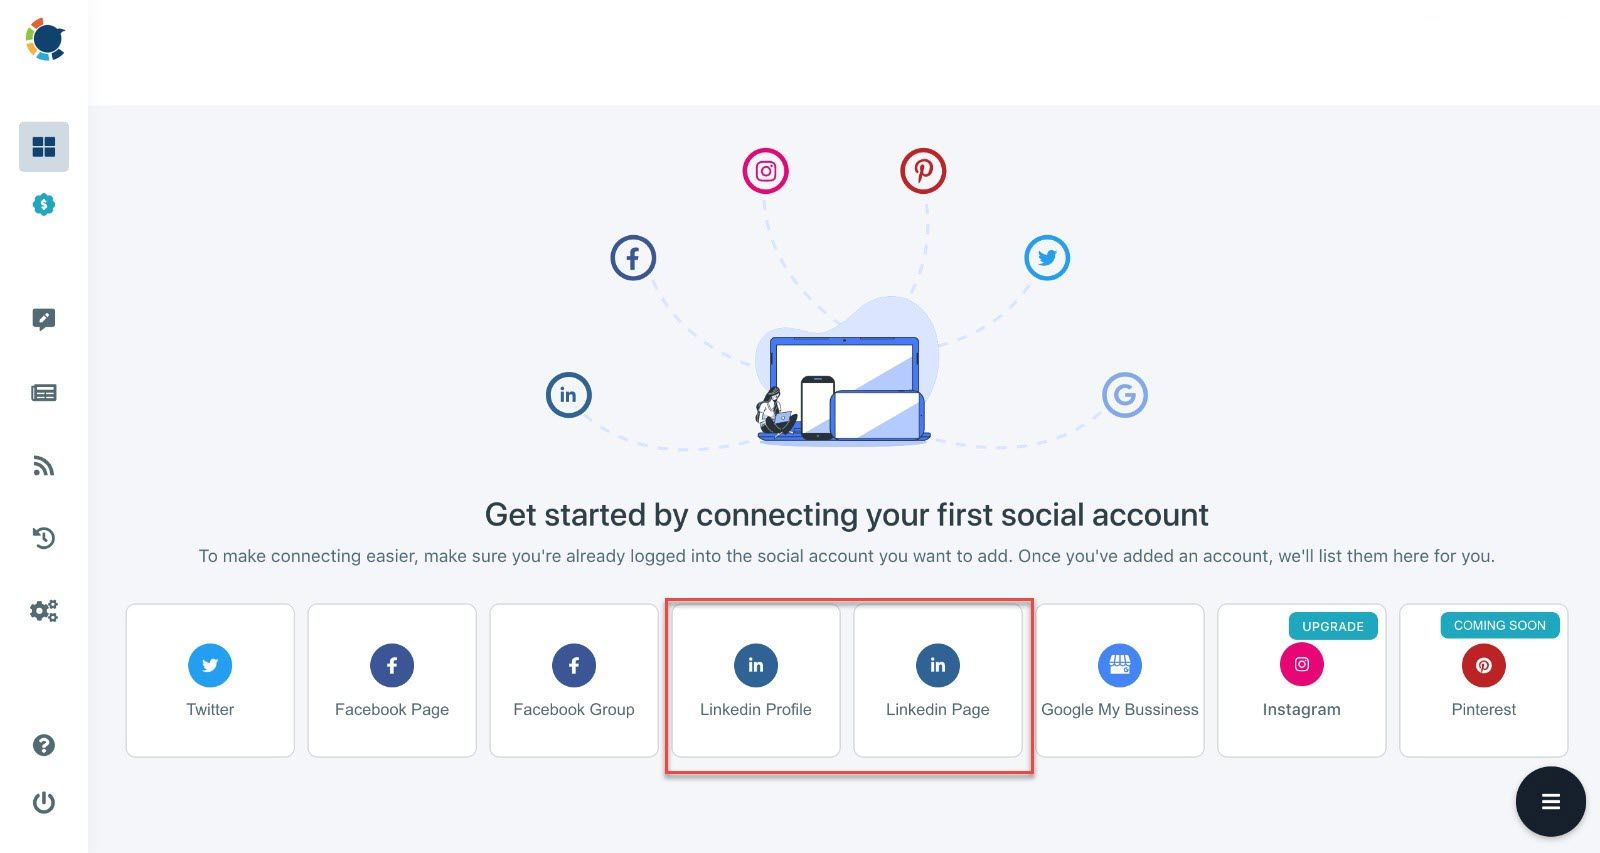 With Circleboom, you can manage multiple LinkedIn accounts and schedule LinkedIn posts.